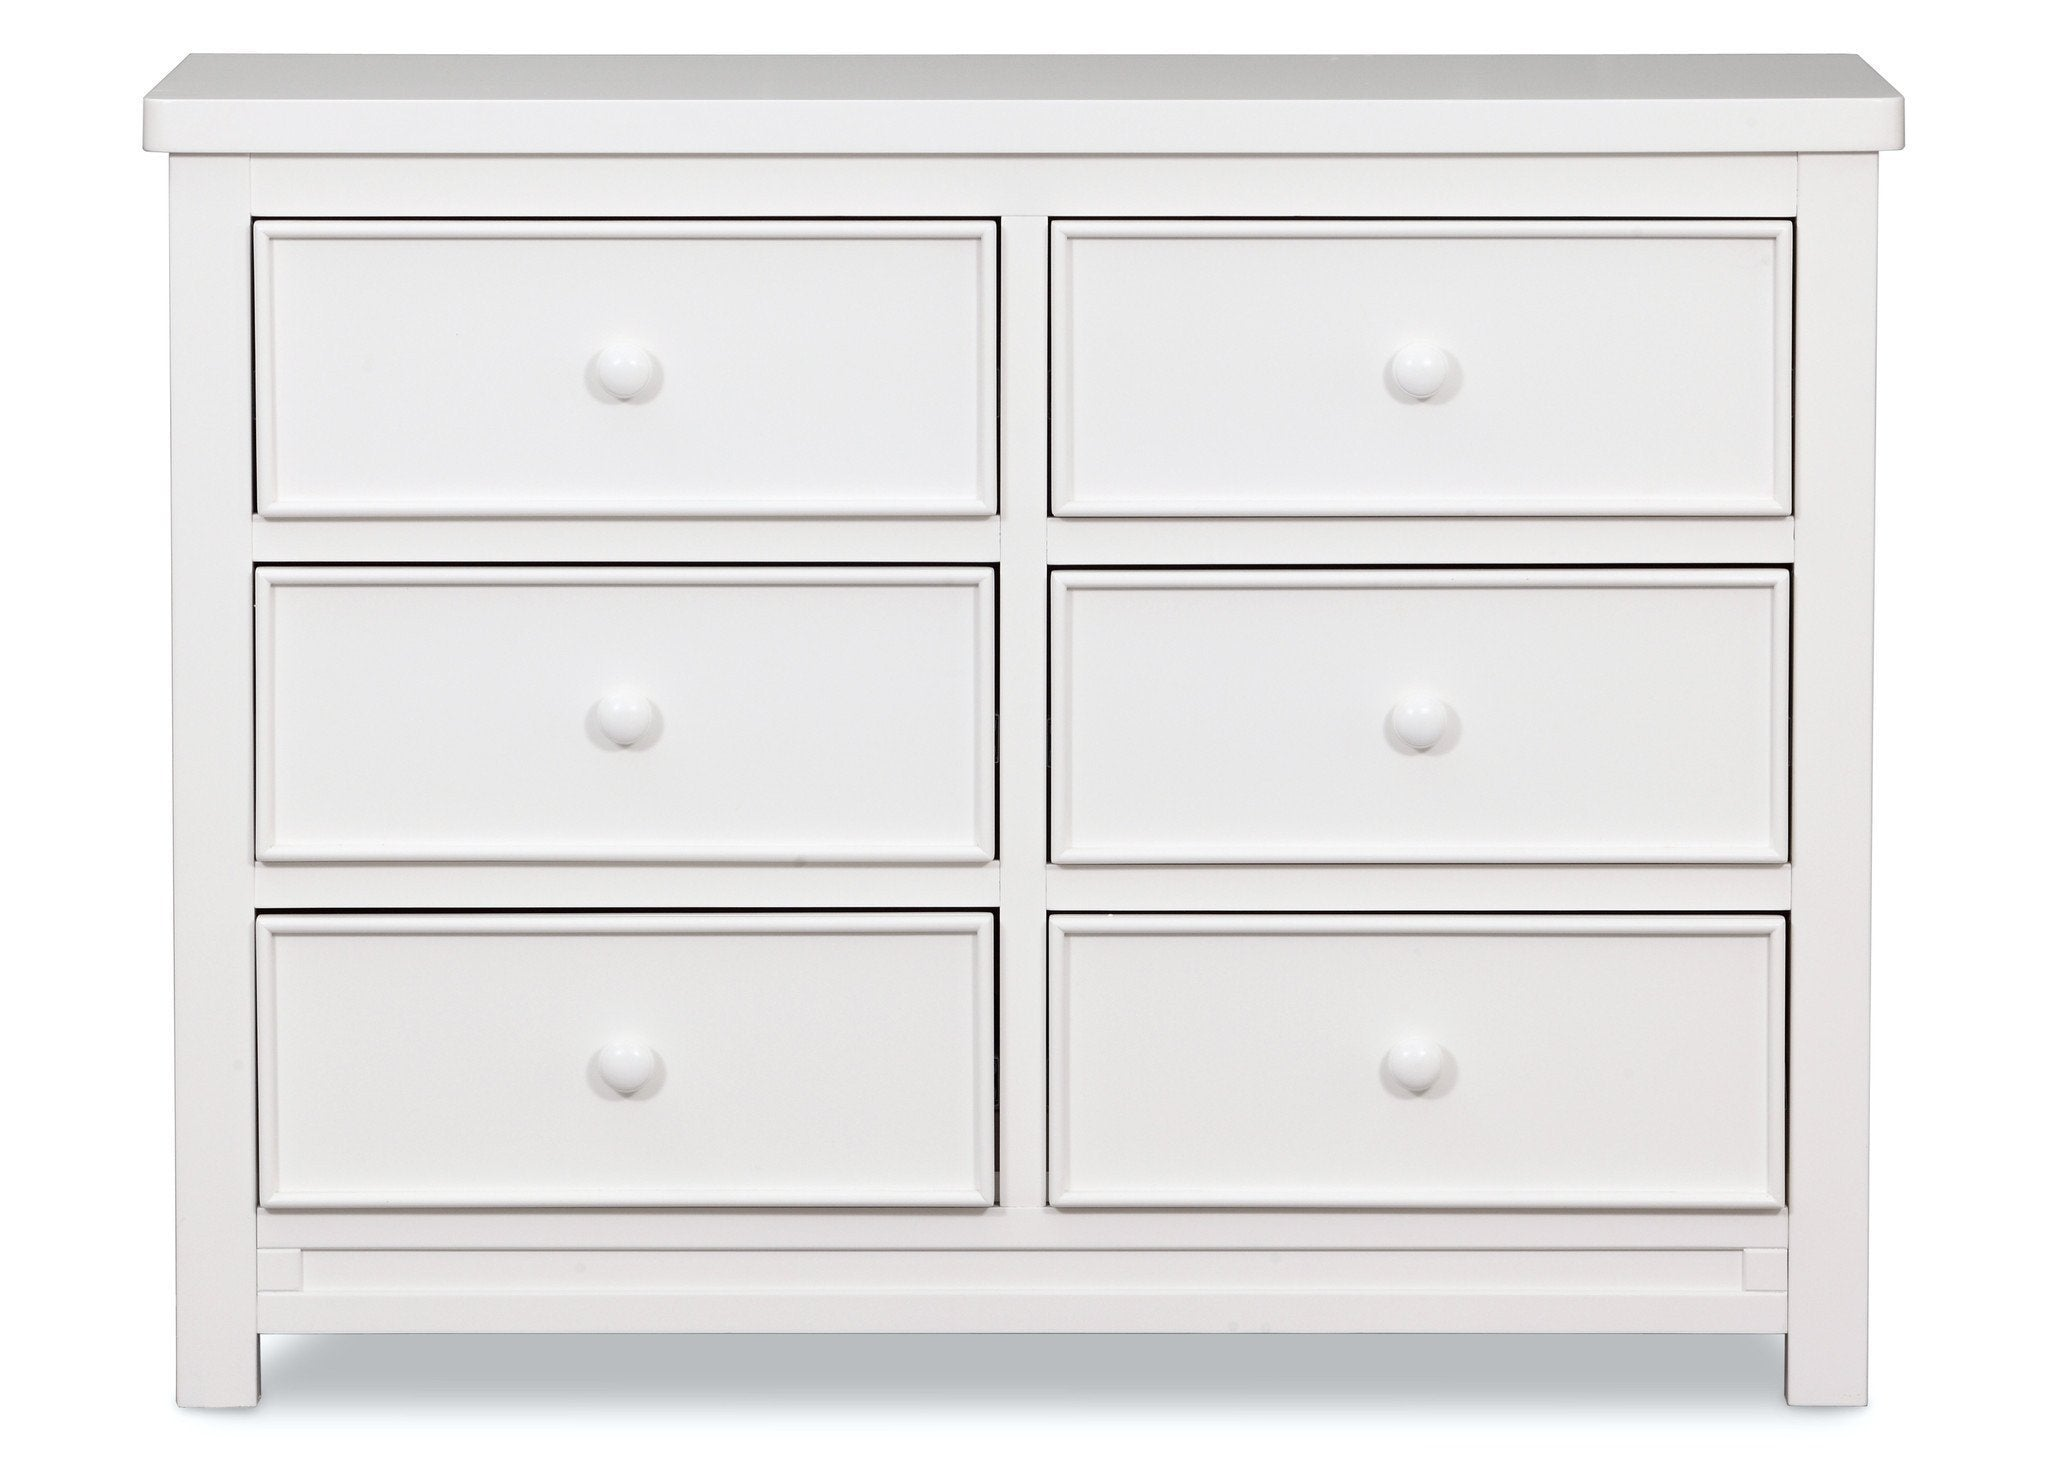 somerset angle us white walmart view dresser children hi products drawer side res delta